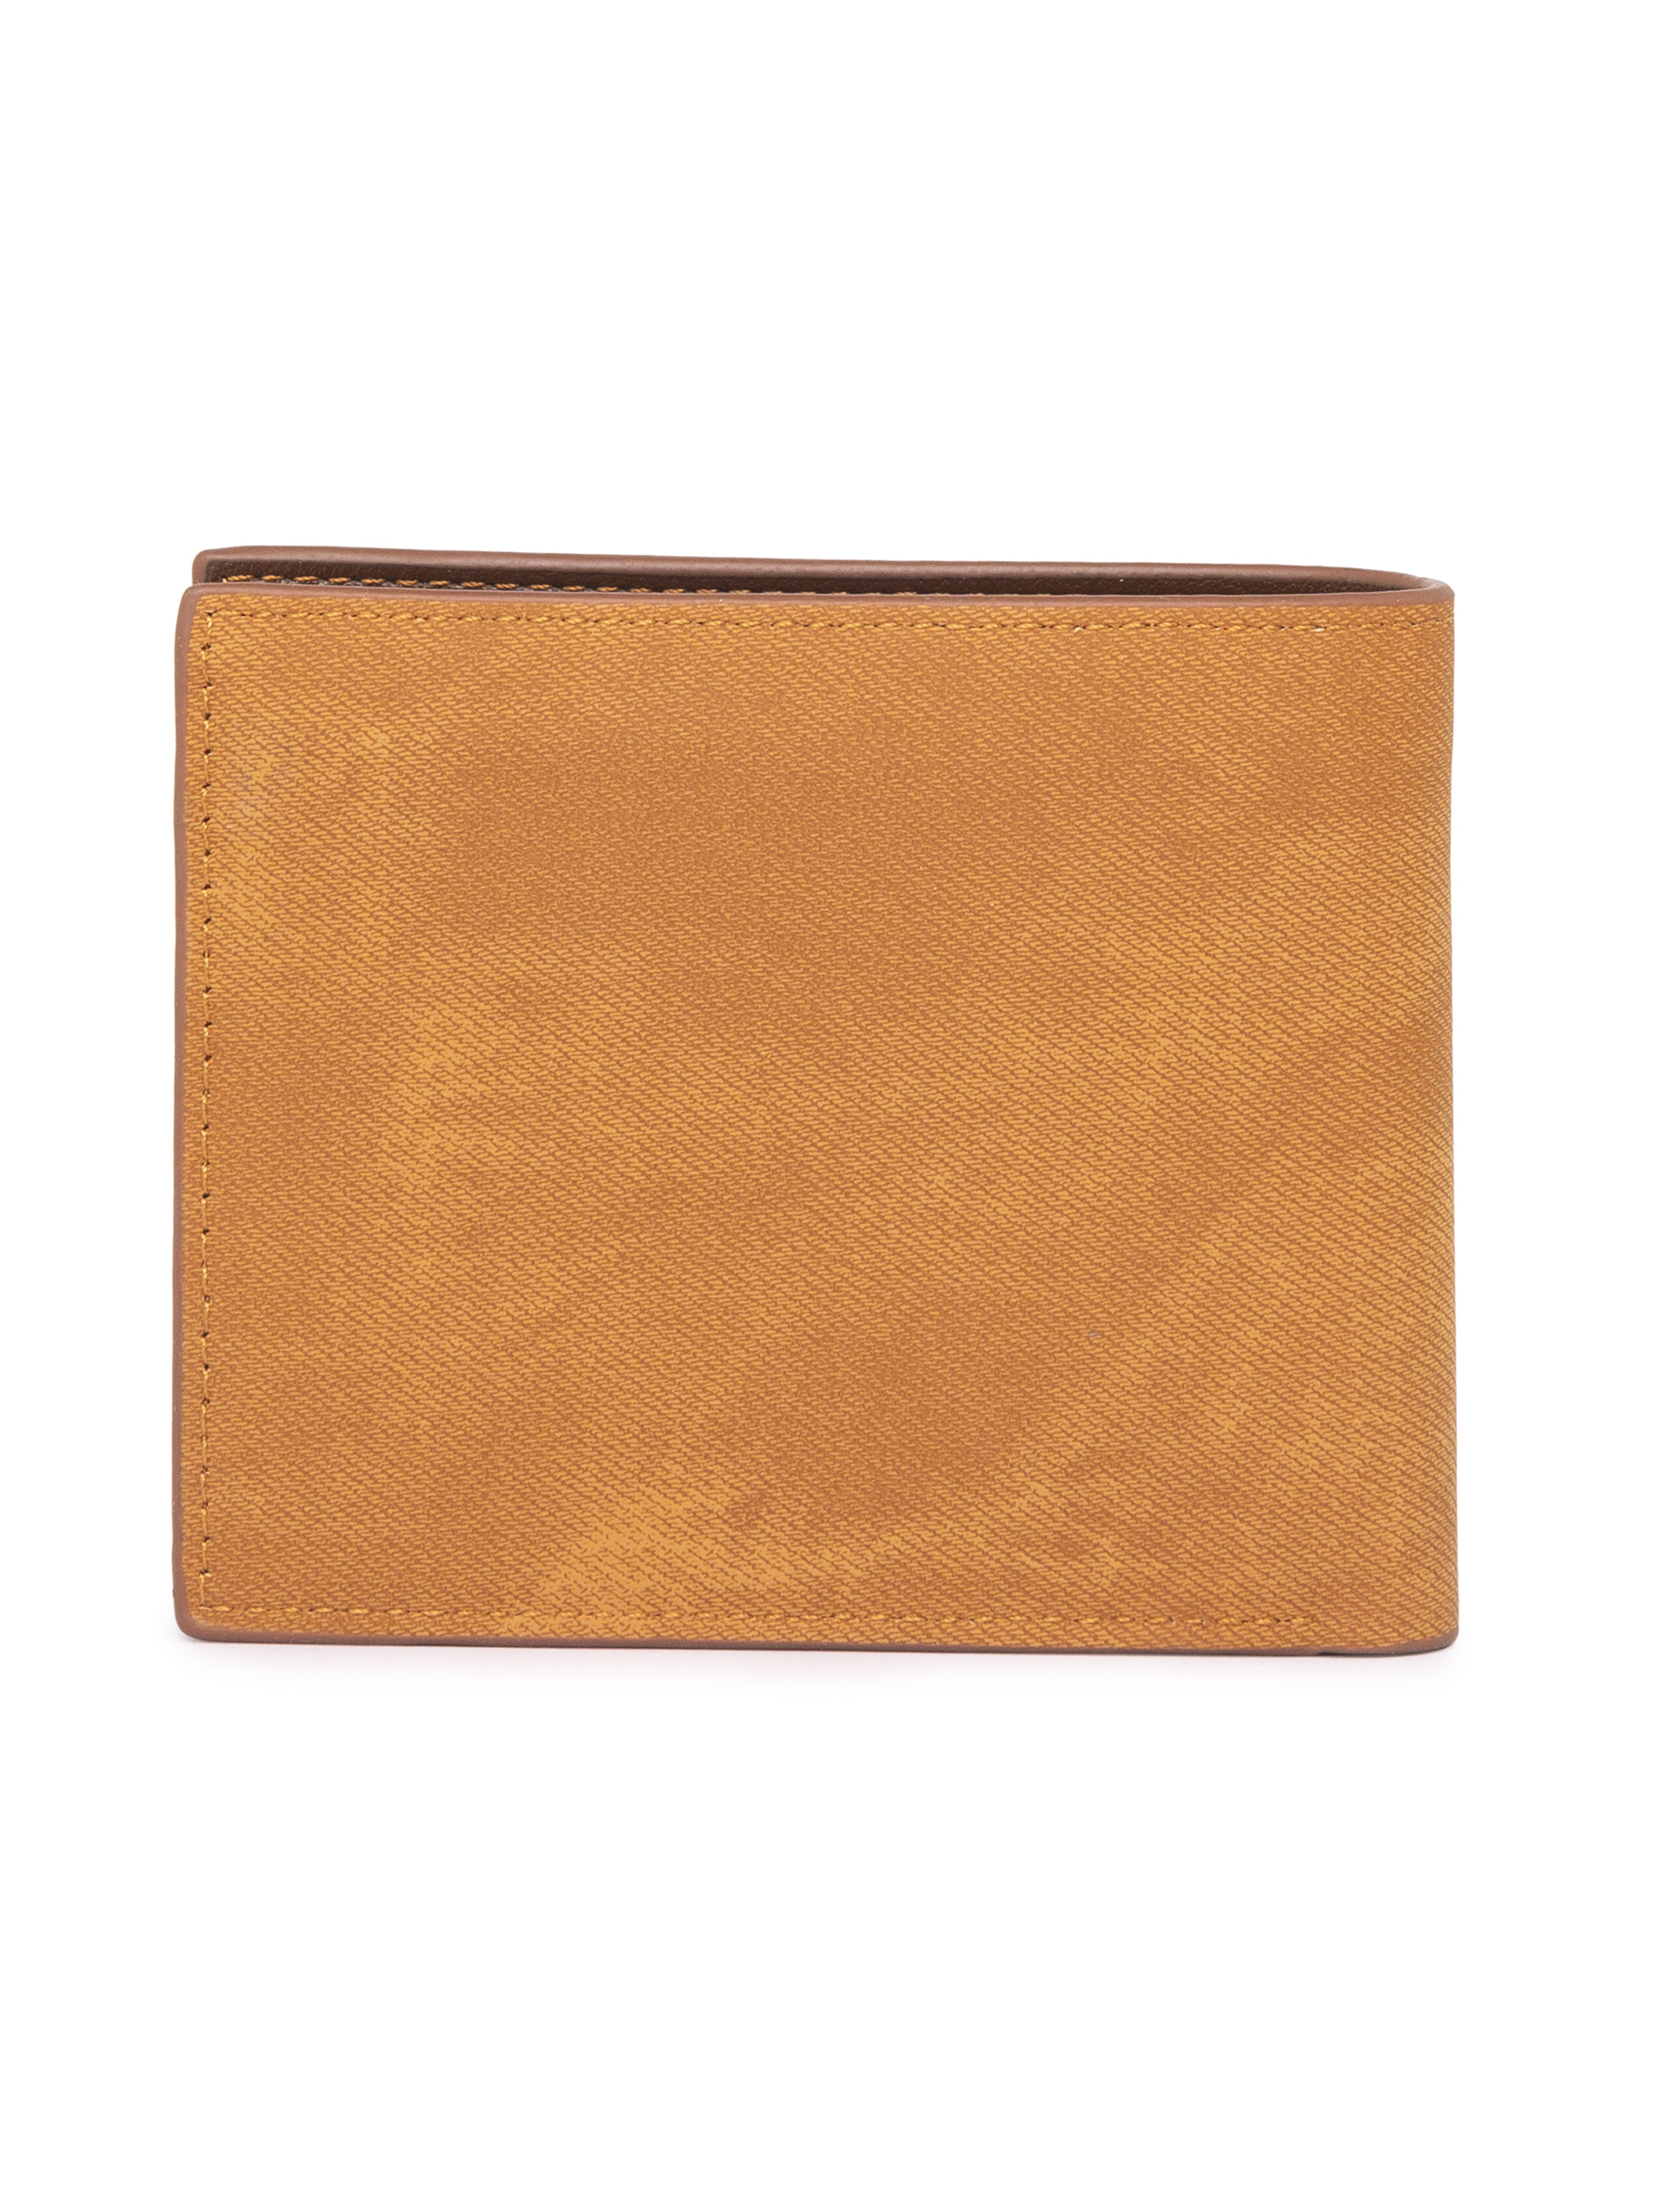 Solid Tan Wallet-2